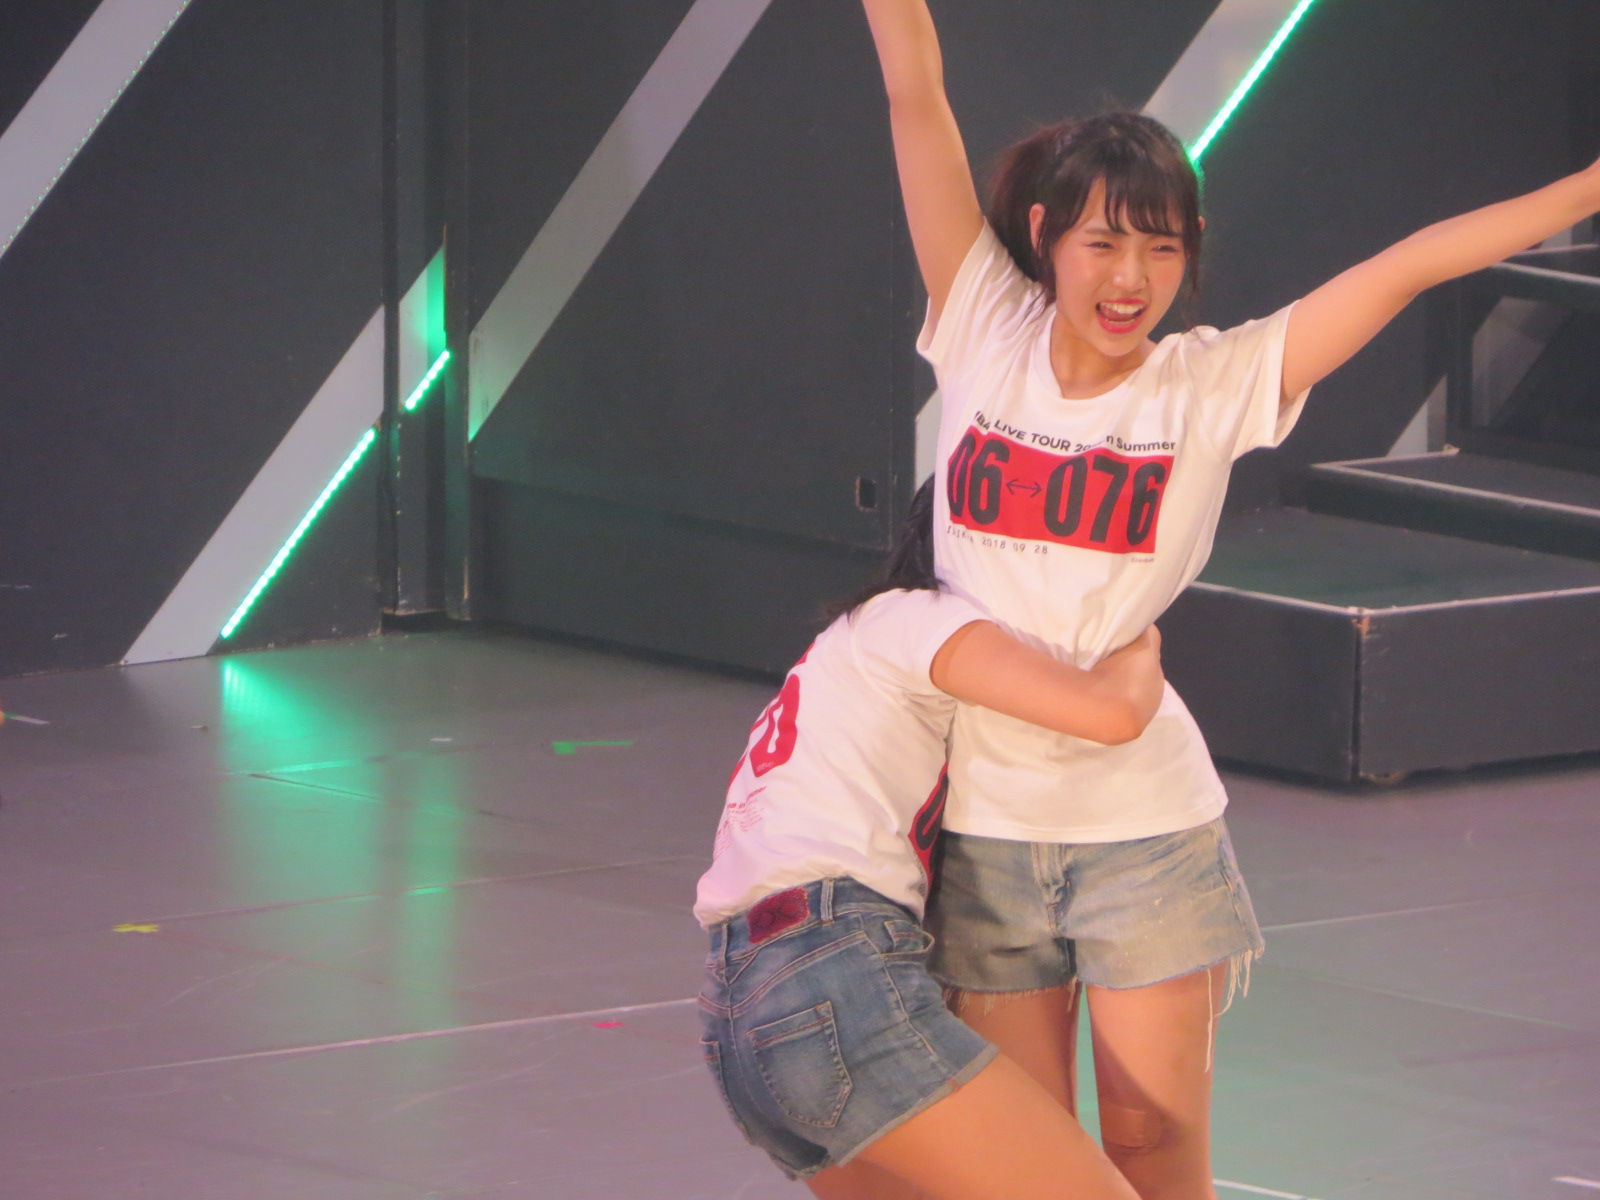 NMB48 LIVE TOUR 2018 in Summer・石川公演の画像-146